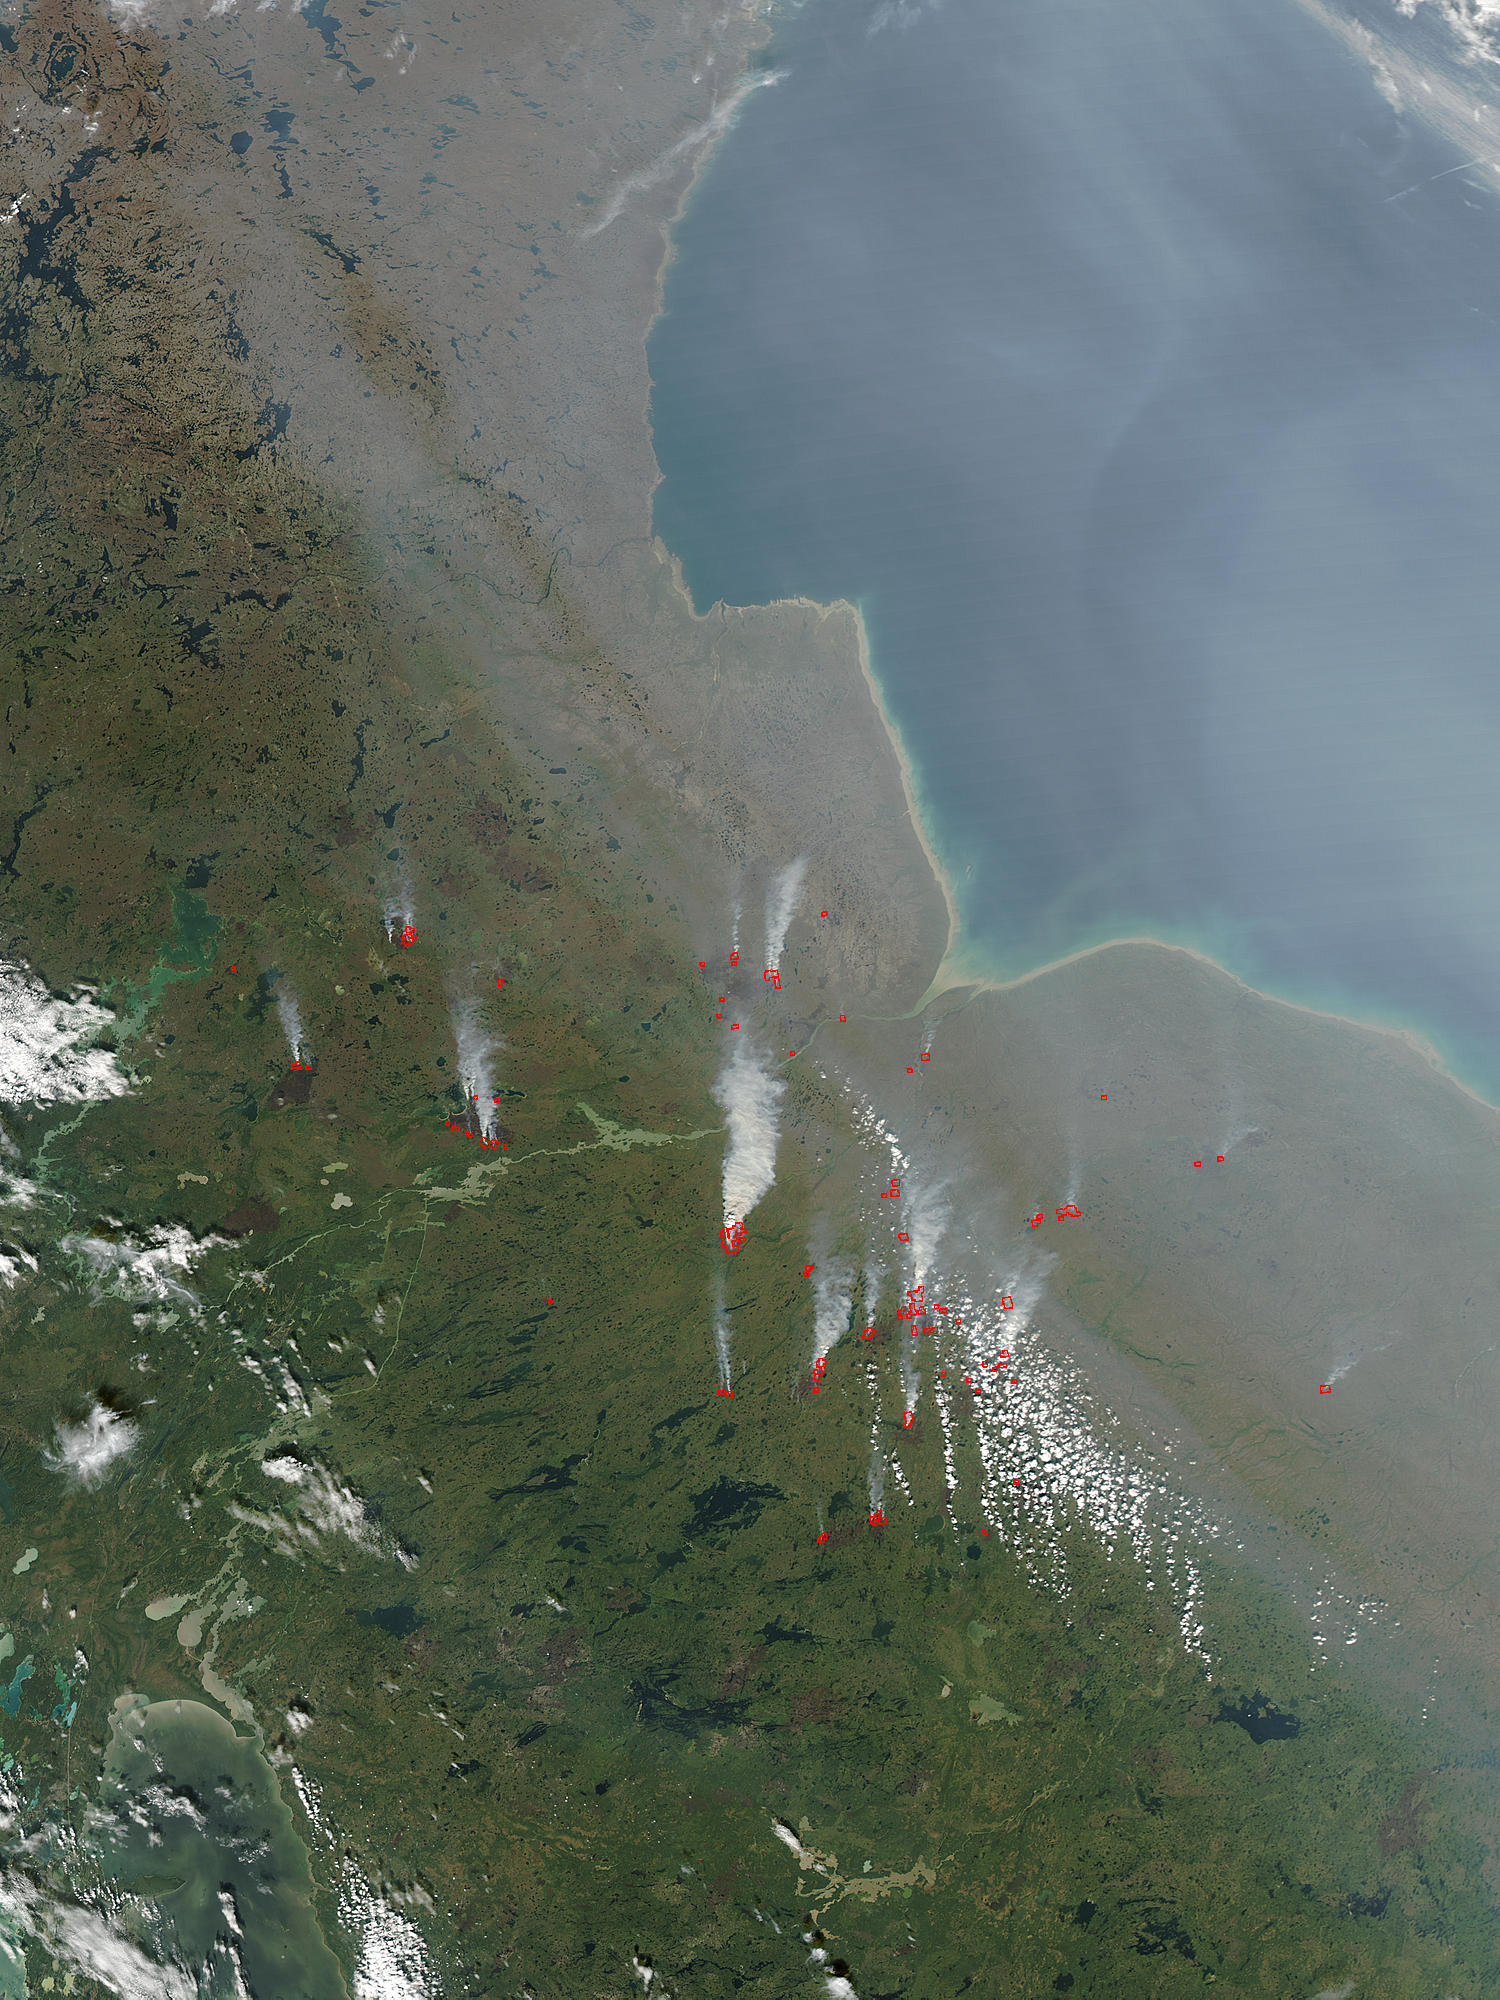 Fires and smoke in Manitoba, Canada - related image preview